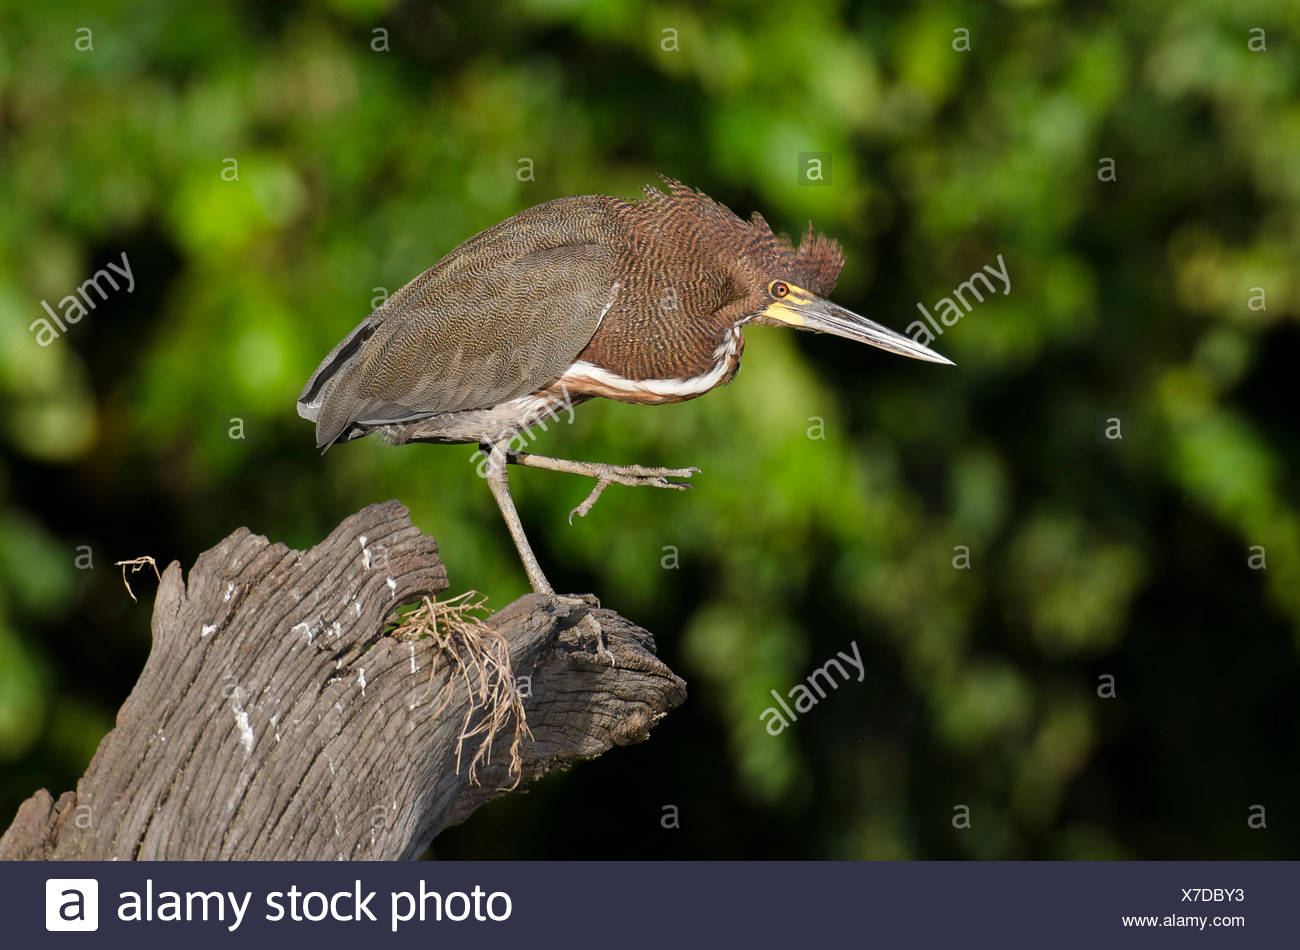 A rufescent tiger heron, Tigrisoma lineatum, scratching. Stock Photo